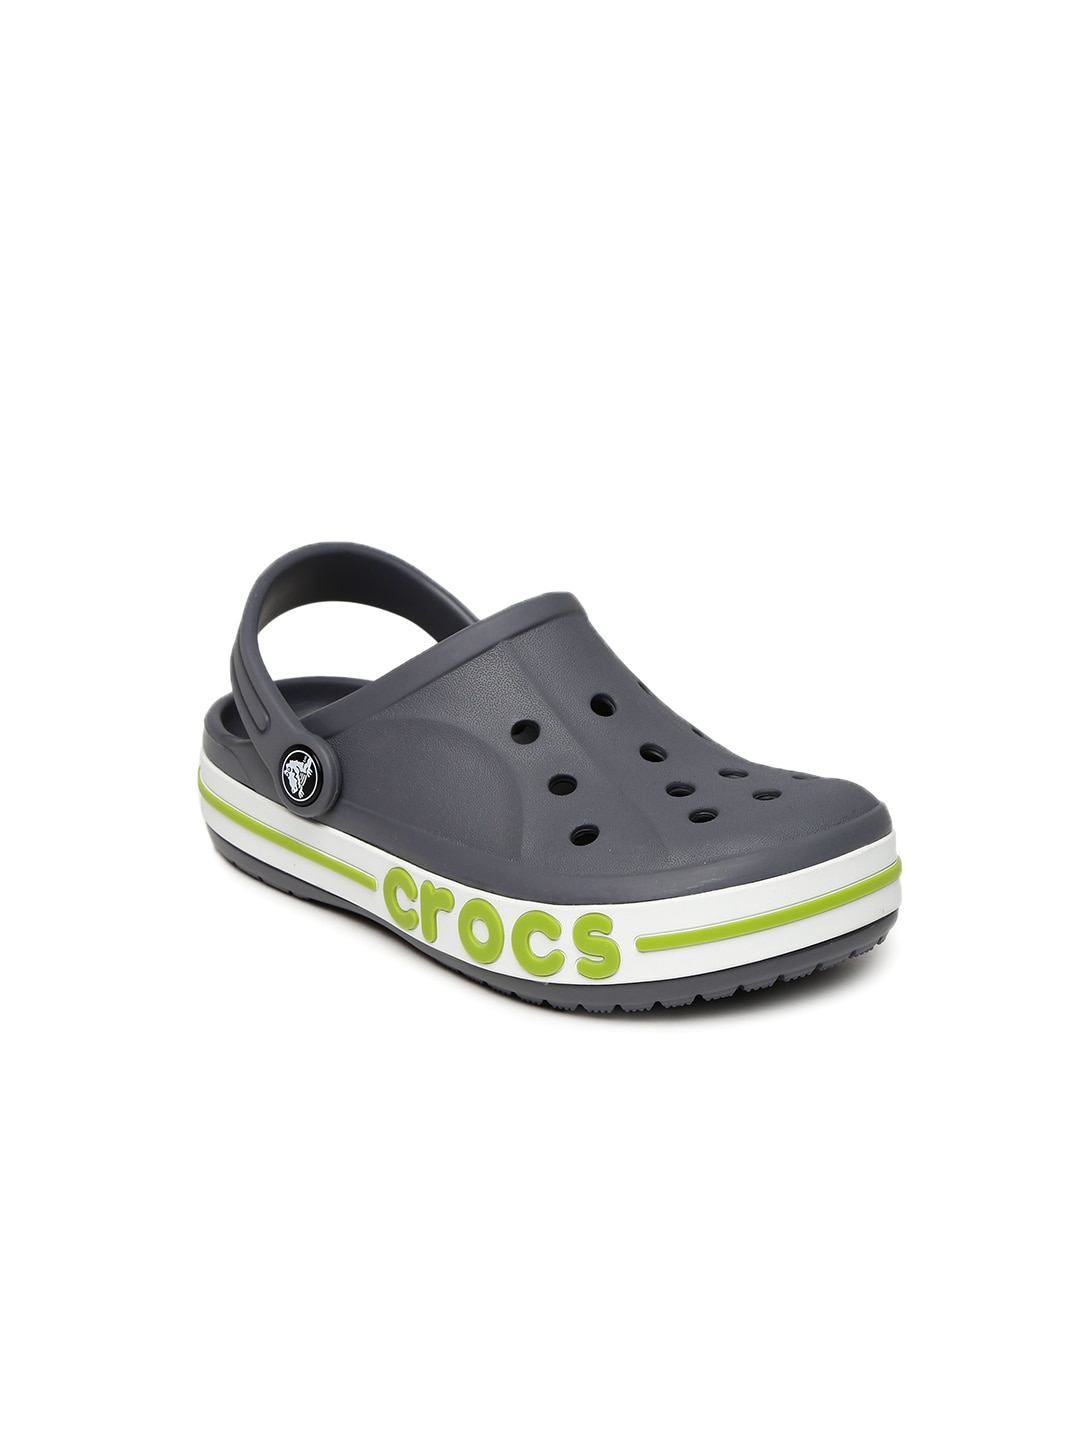 7ba7e0547 Crocs Flip Flops - Buy Crocs Flip Flops Online in India